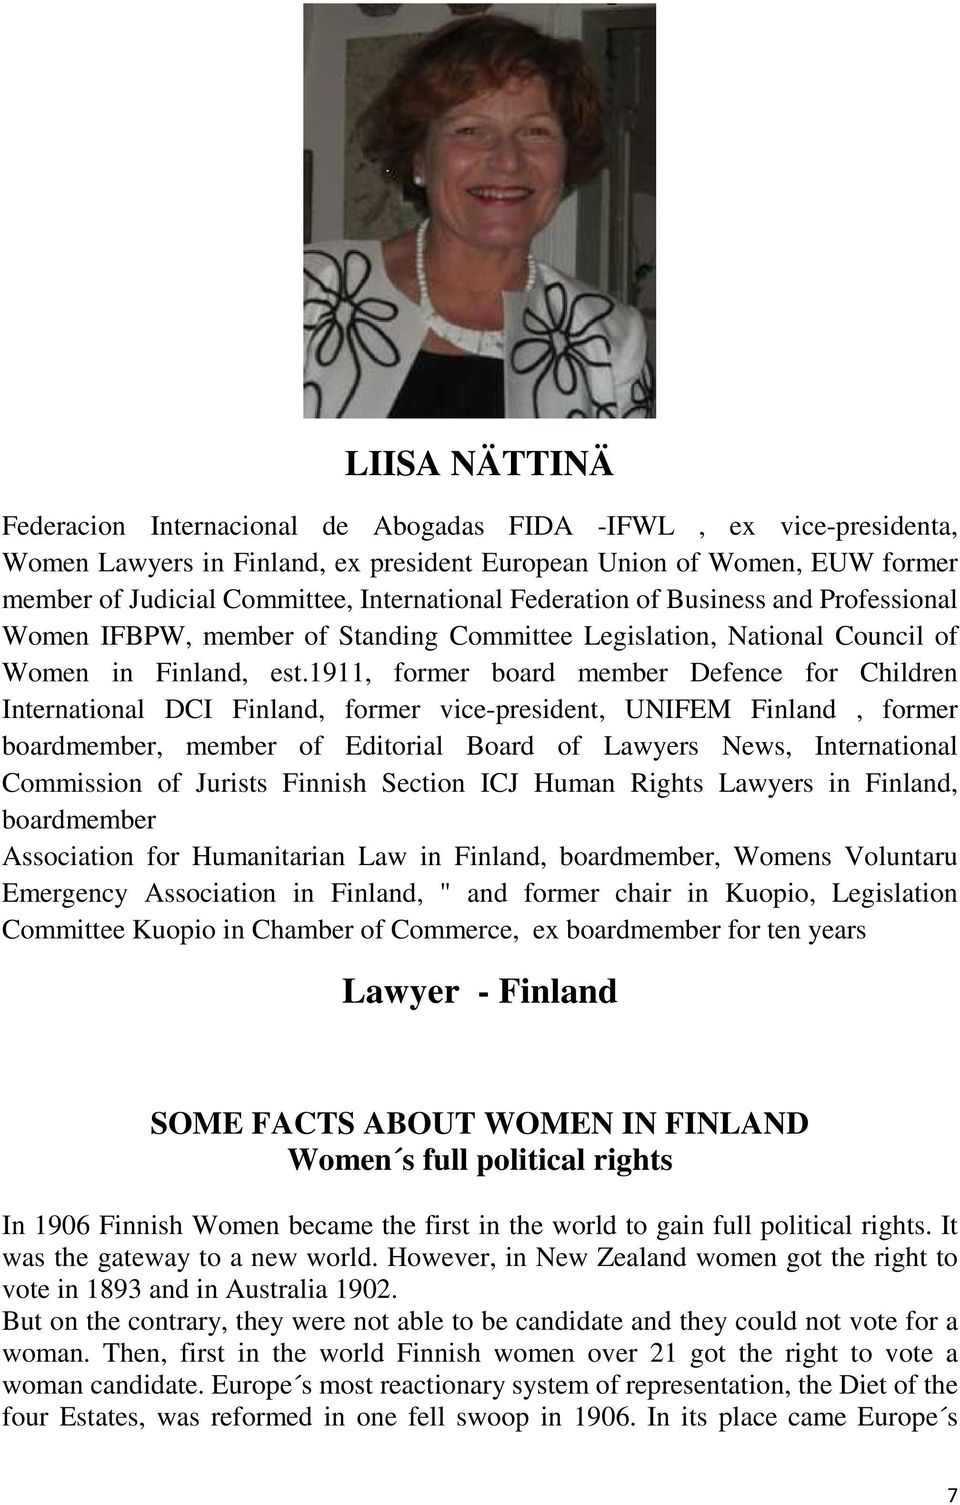 1911, former board member Defence for Children International DCI Finland, former vice-president, UNIFEM Finland, former boardmember, member of Editorial Board of Lawyers News, International